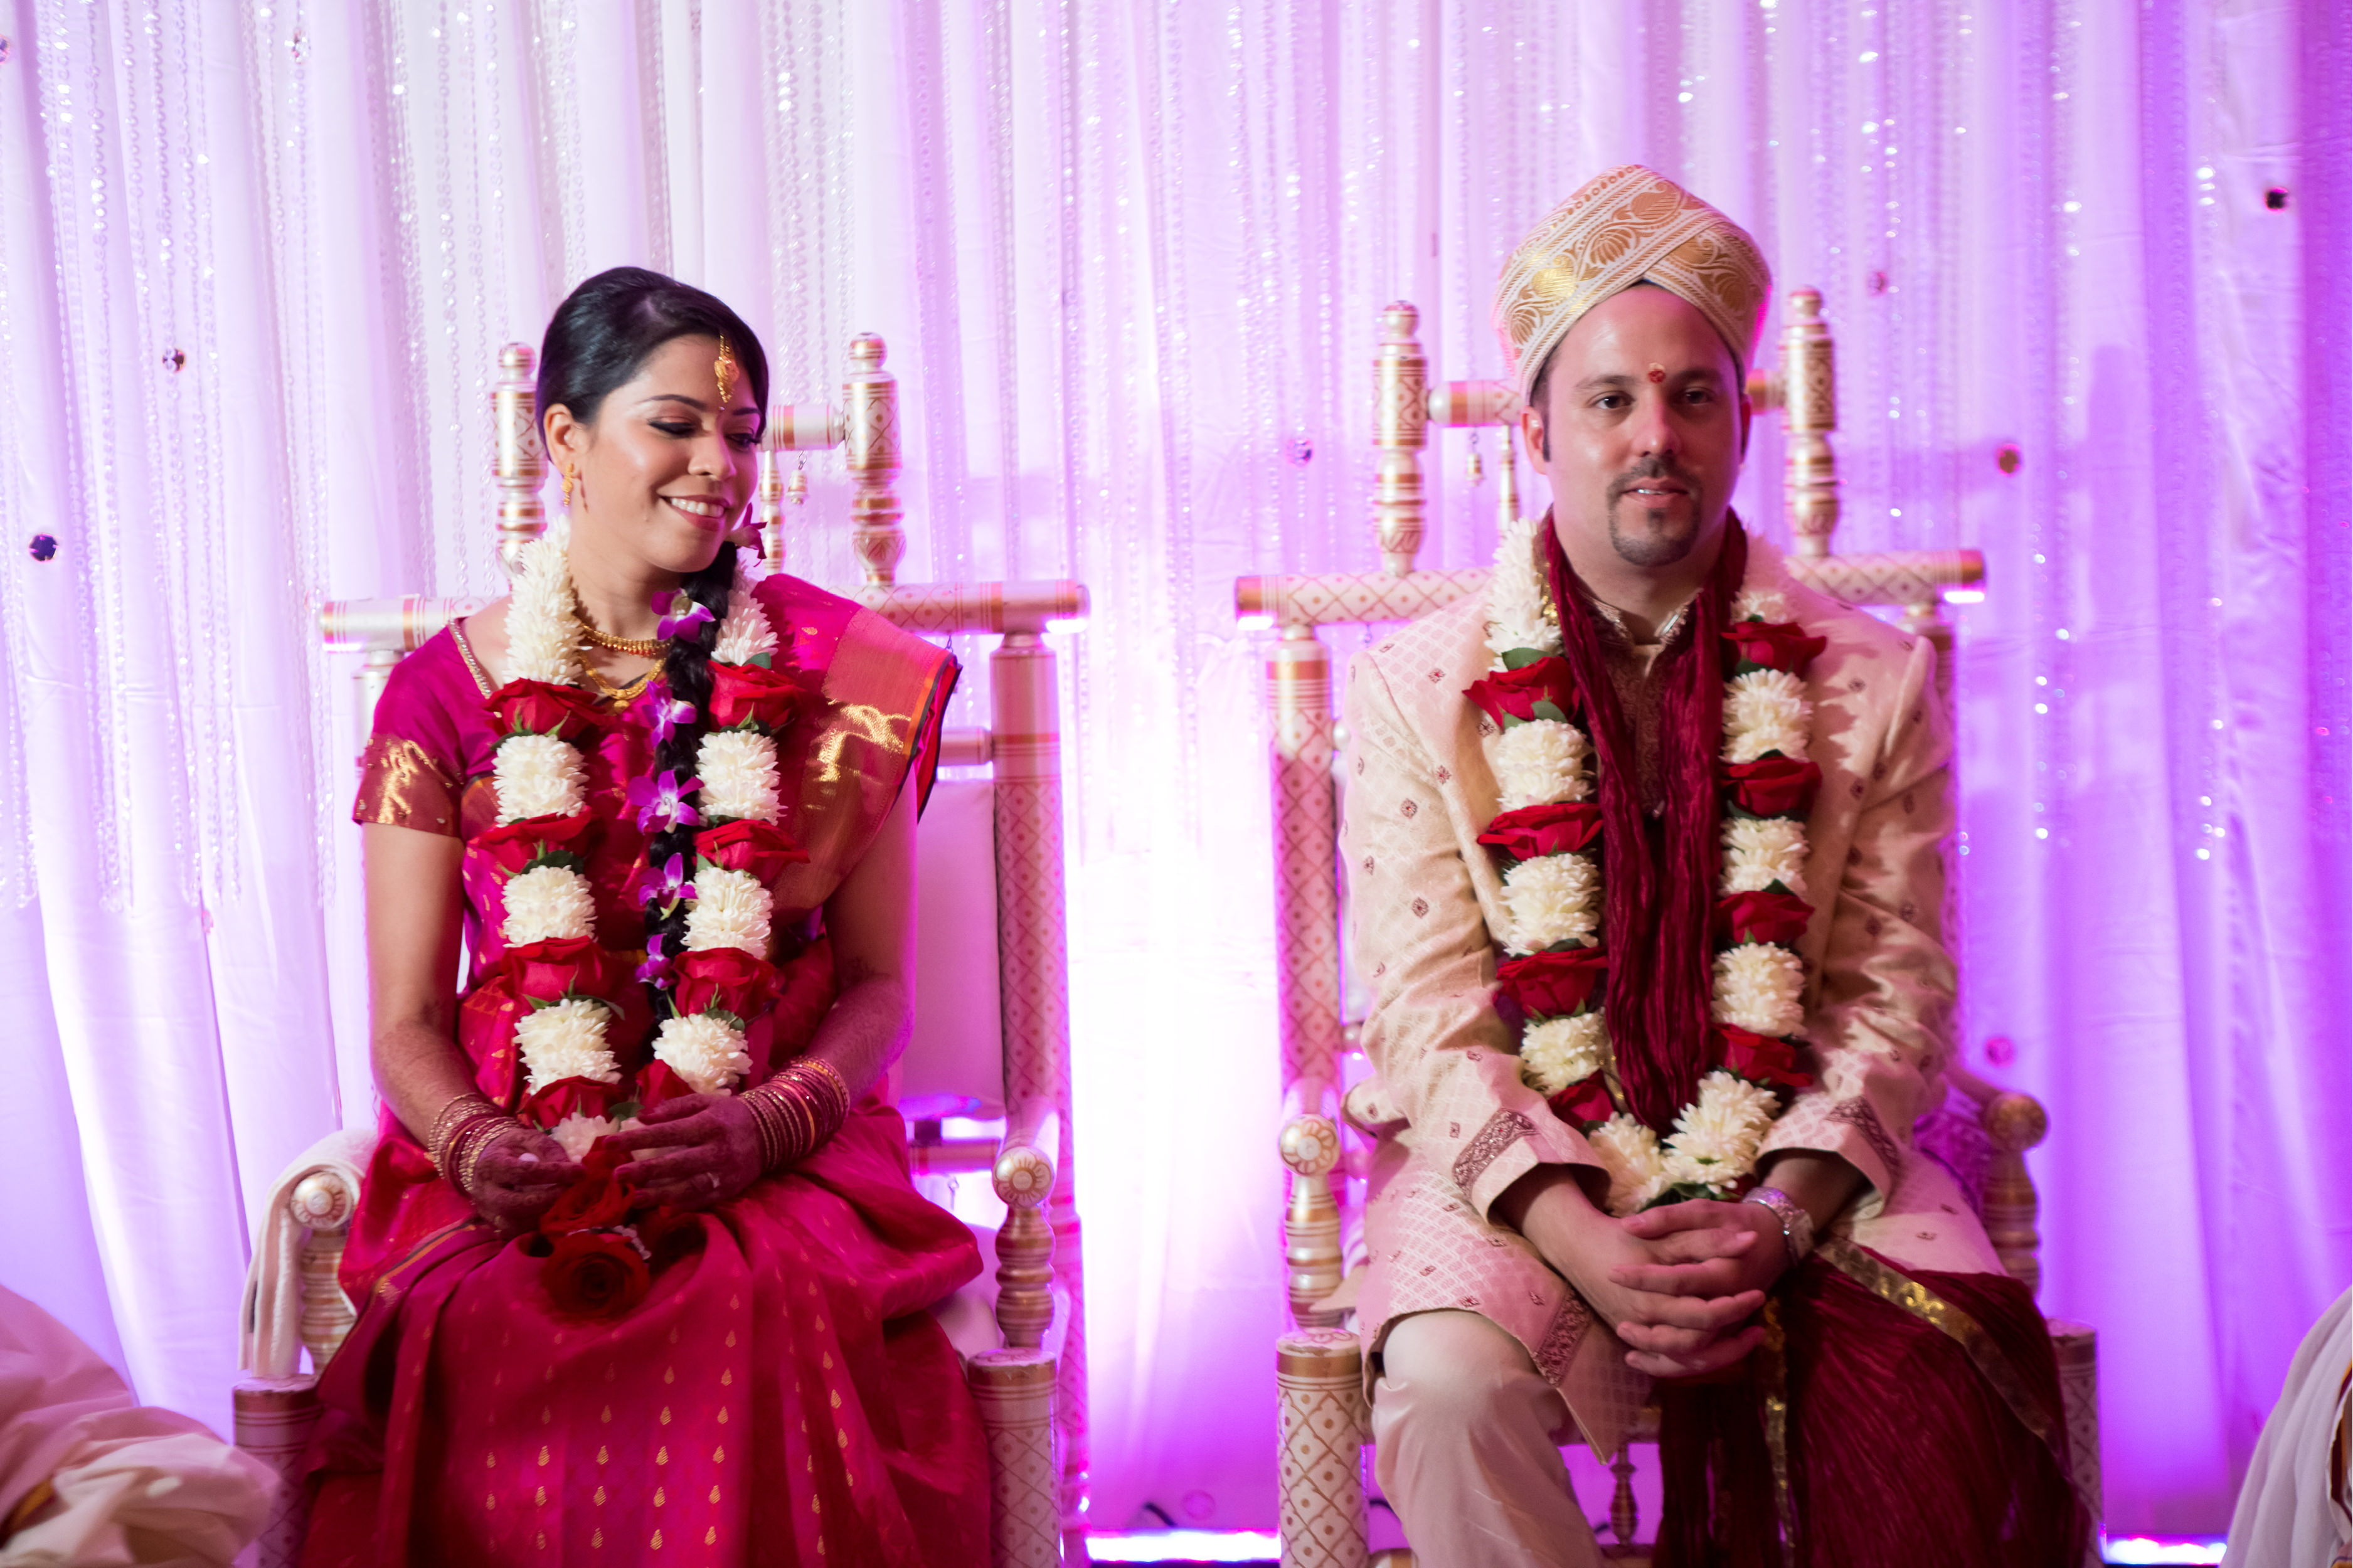 Emma_cleary_photography Indian Wedding14